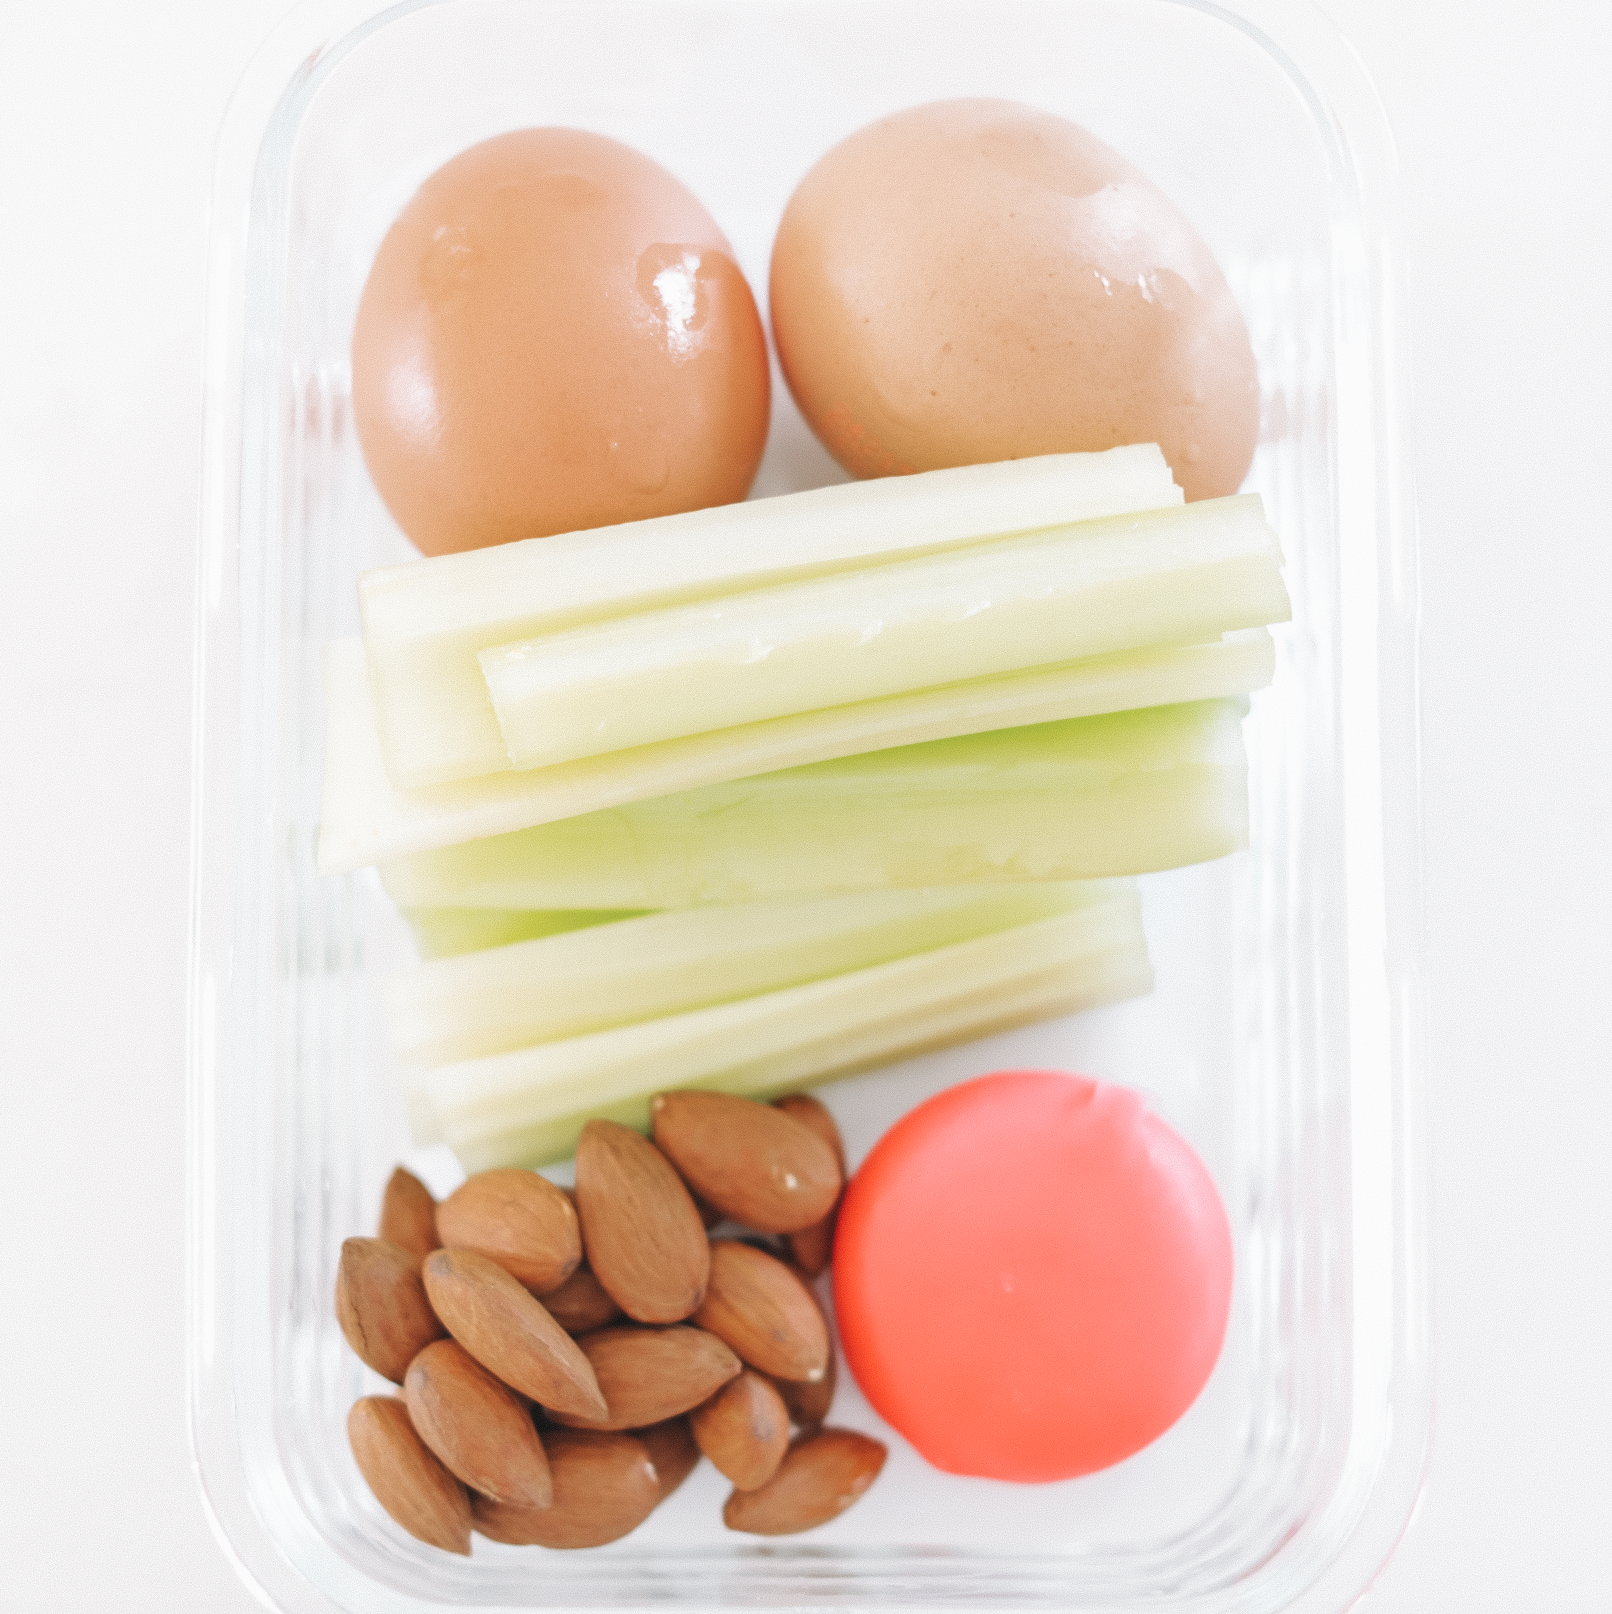 Snack Pack - 382kcal24g P / 27g F / 7g C